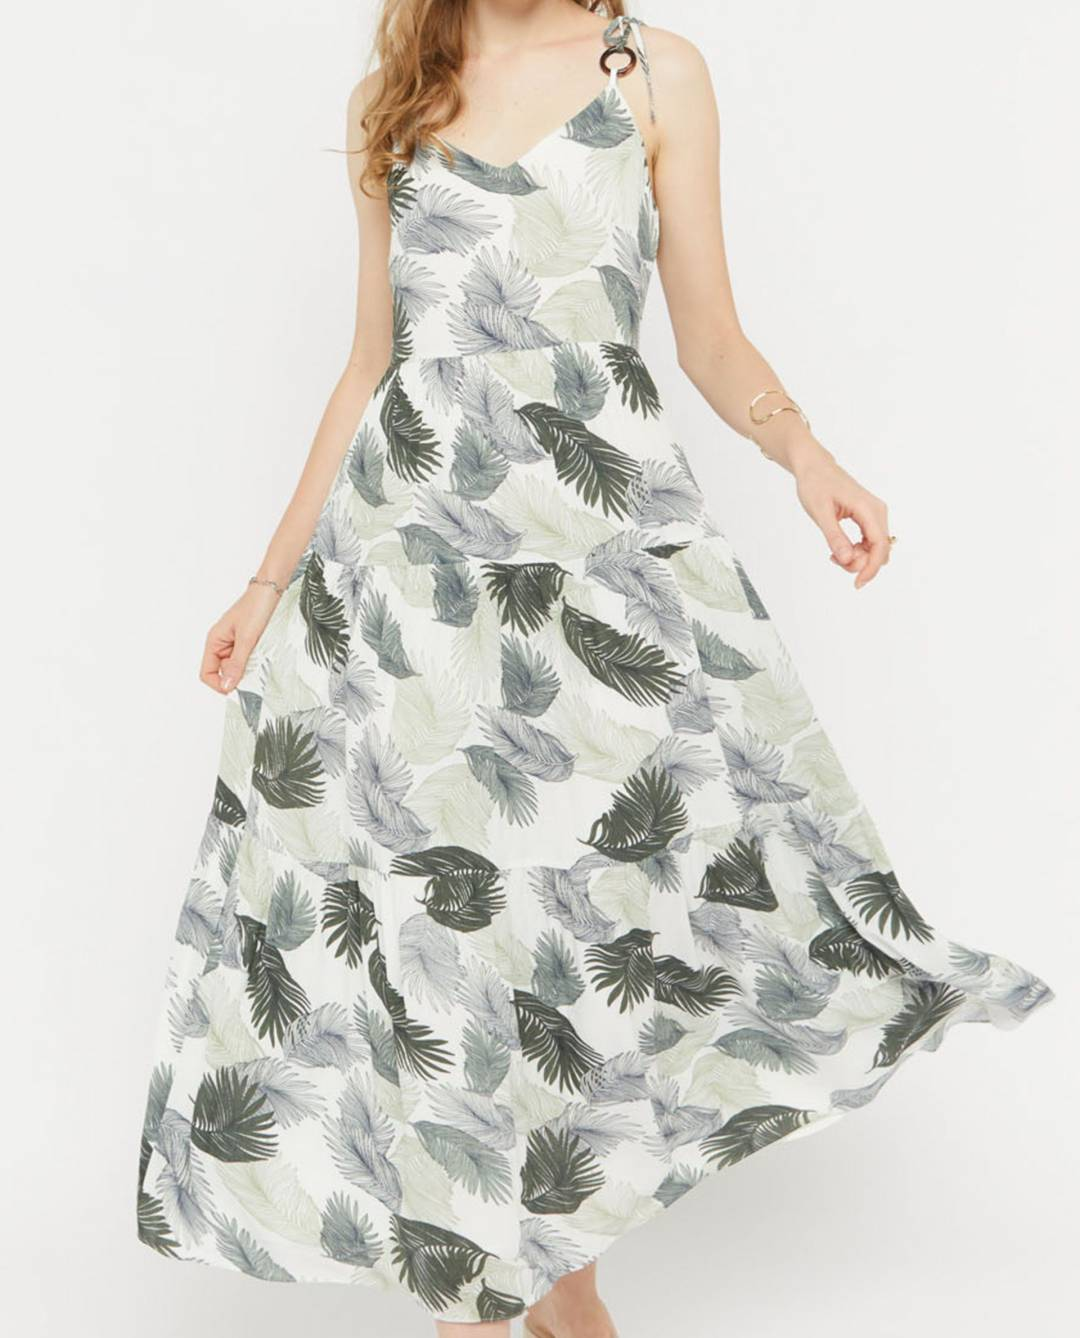 Xun Summer Maxi Dress